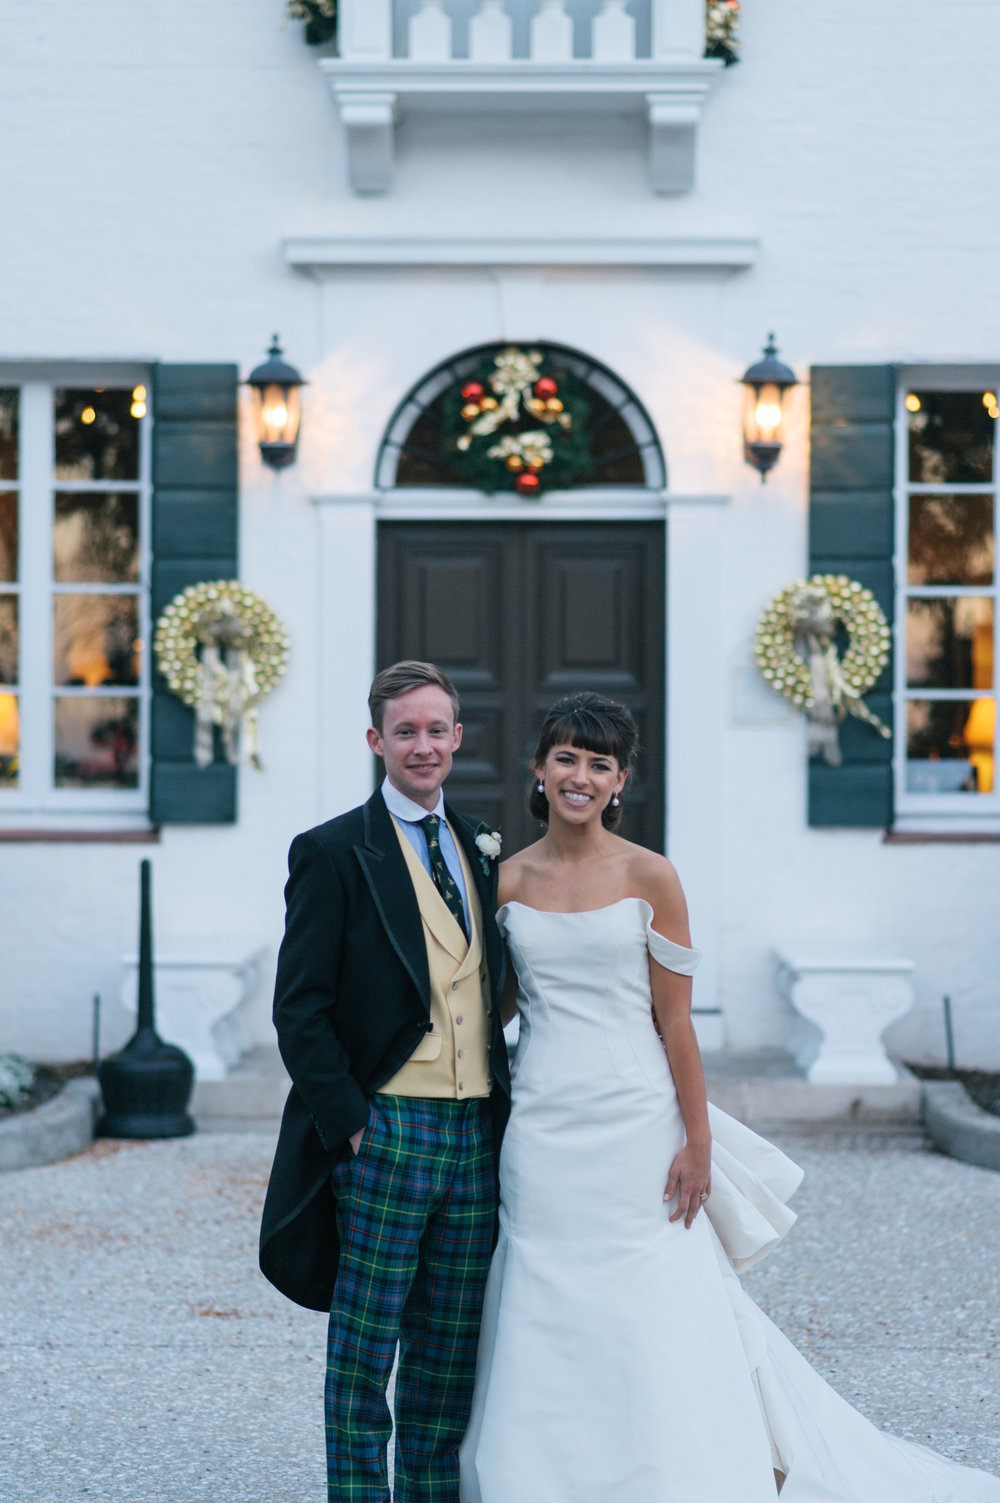 erin-and-sebastian-jekyll-island-club-december-2016-meg-hill-photo- (1610 of 2022).jpg